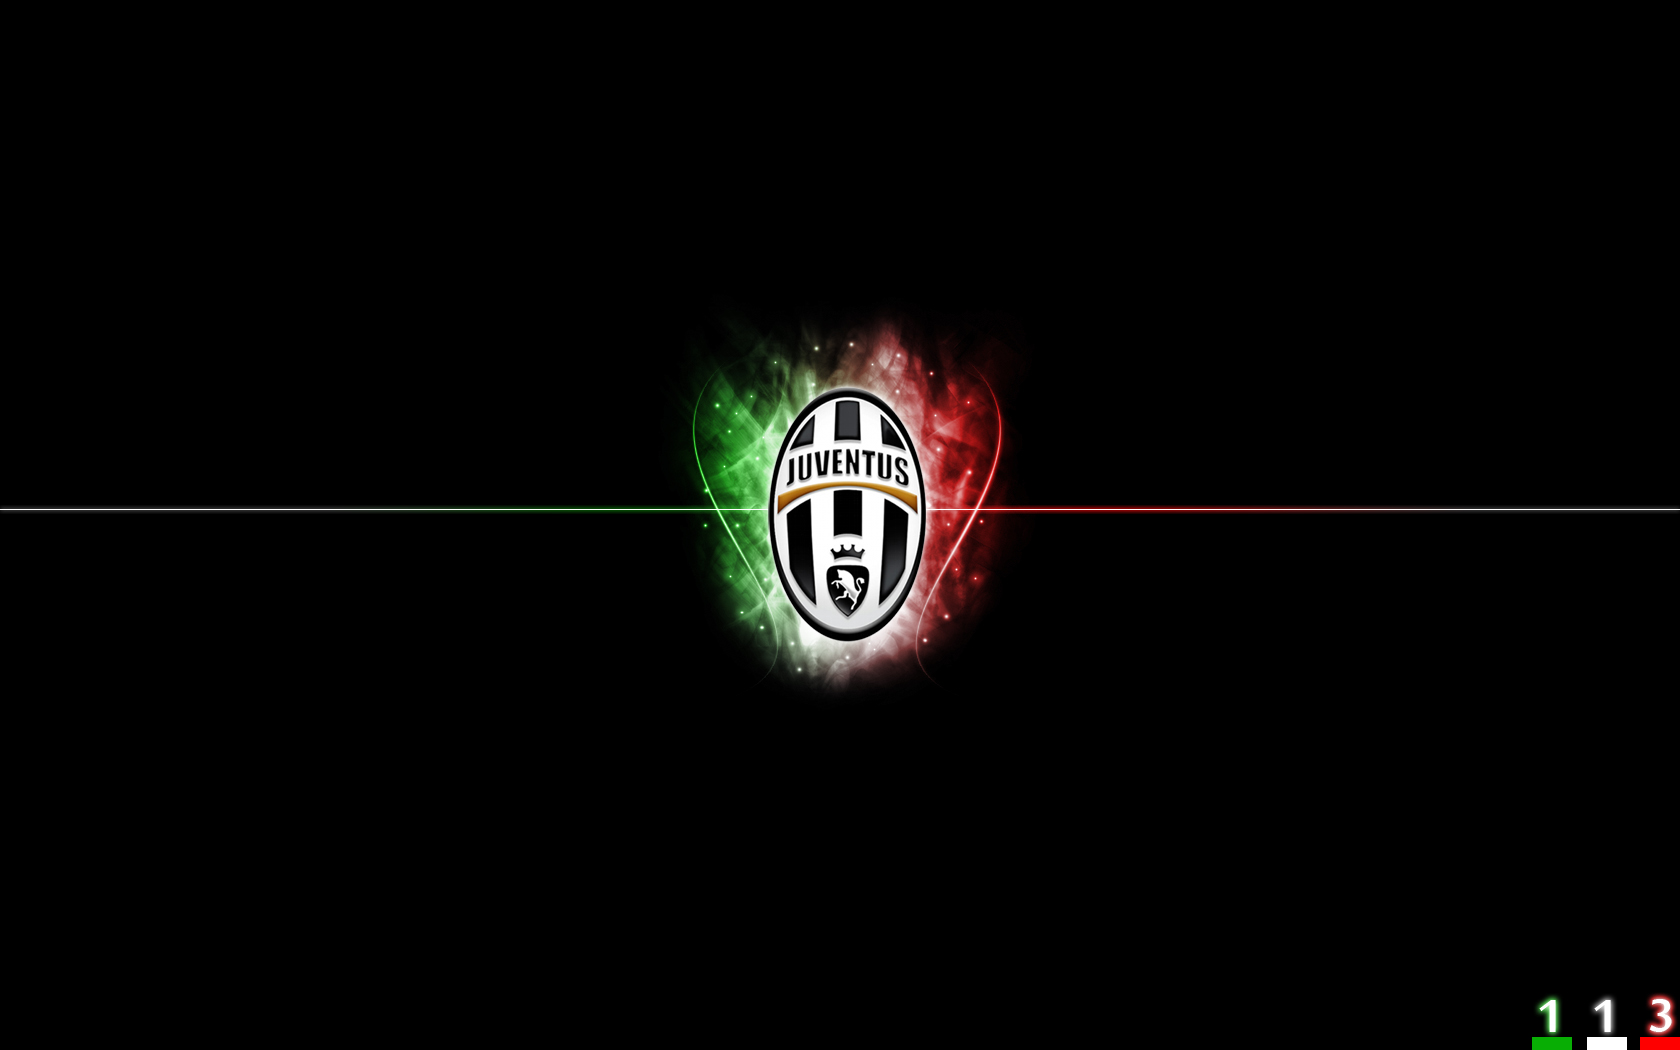 Juventus Wallpaper Iphones Hd Walldiskpaper